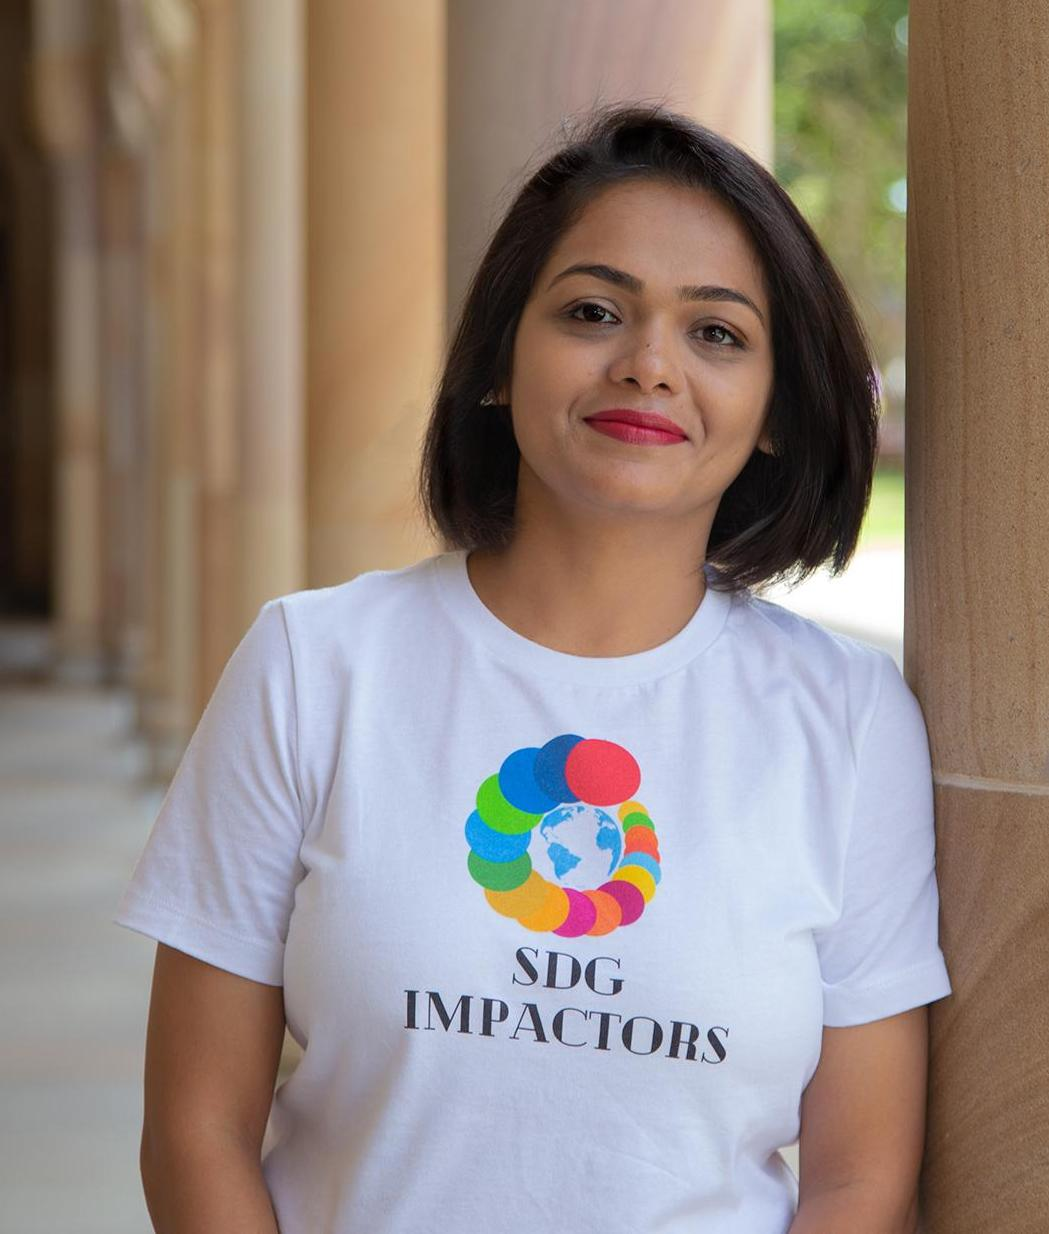 Runali wearing t-shirt with SDG colours representing the 17 UN goals